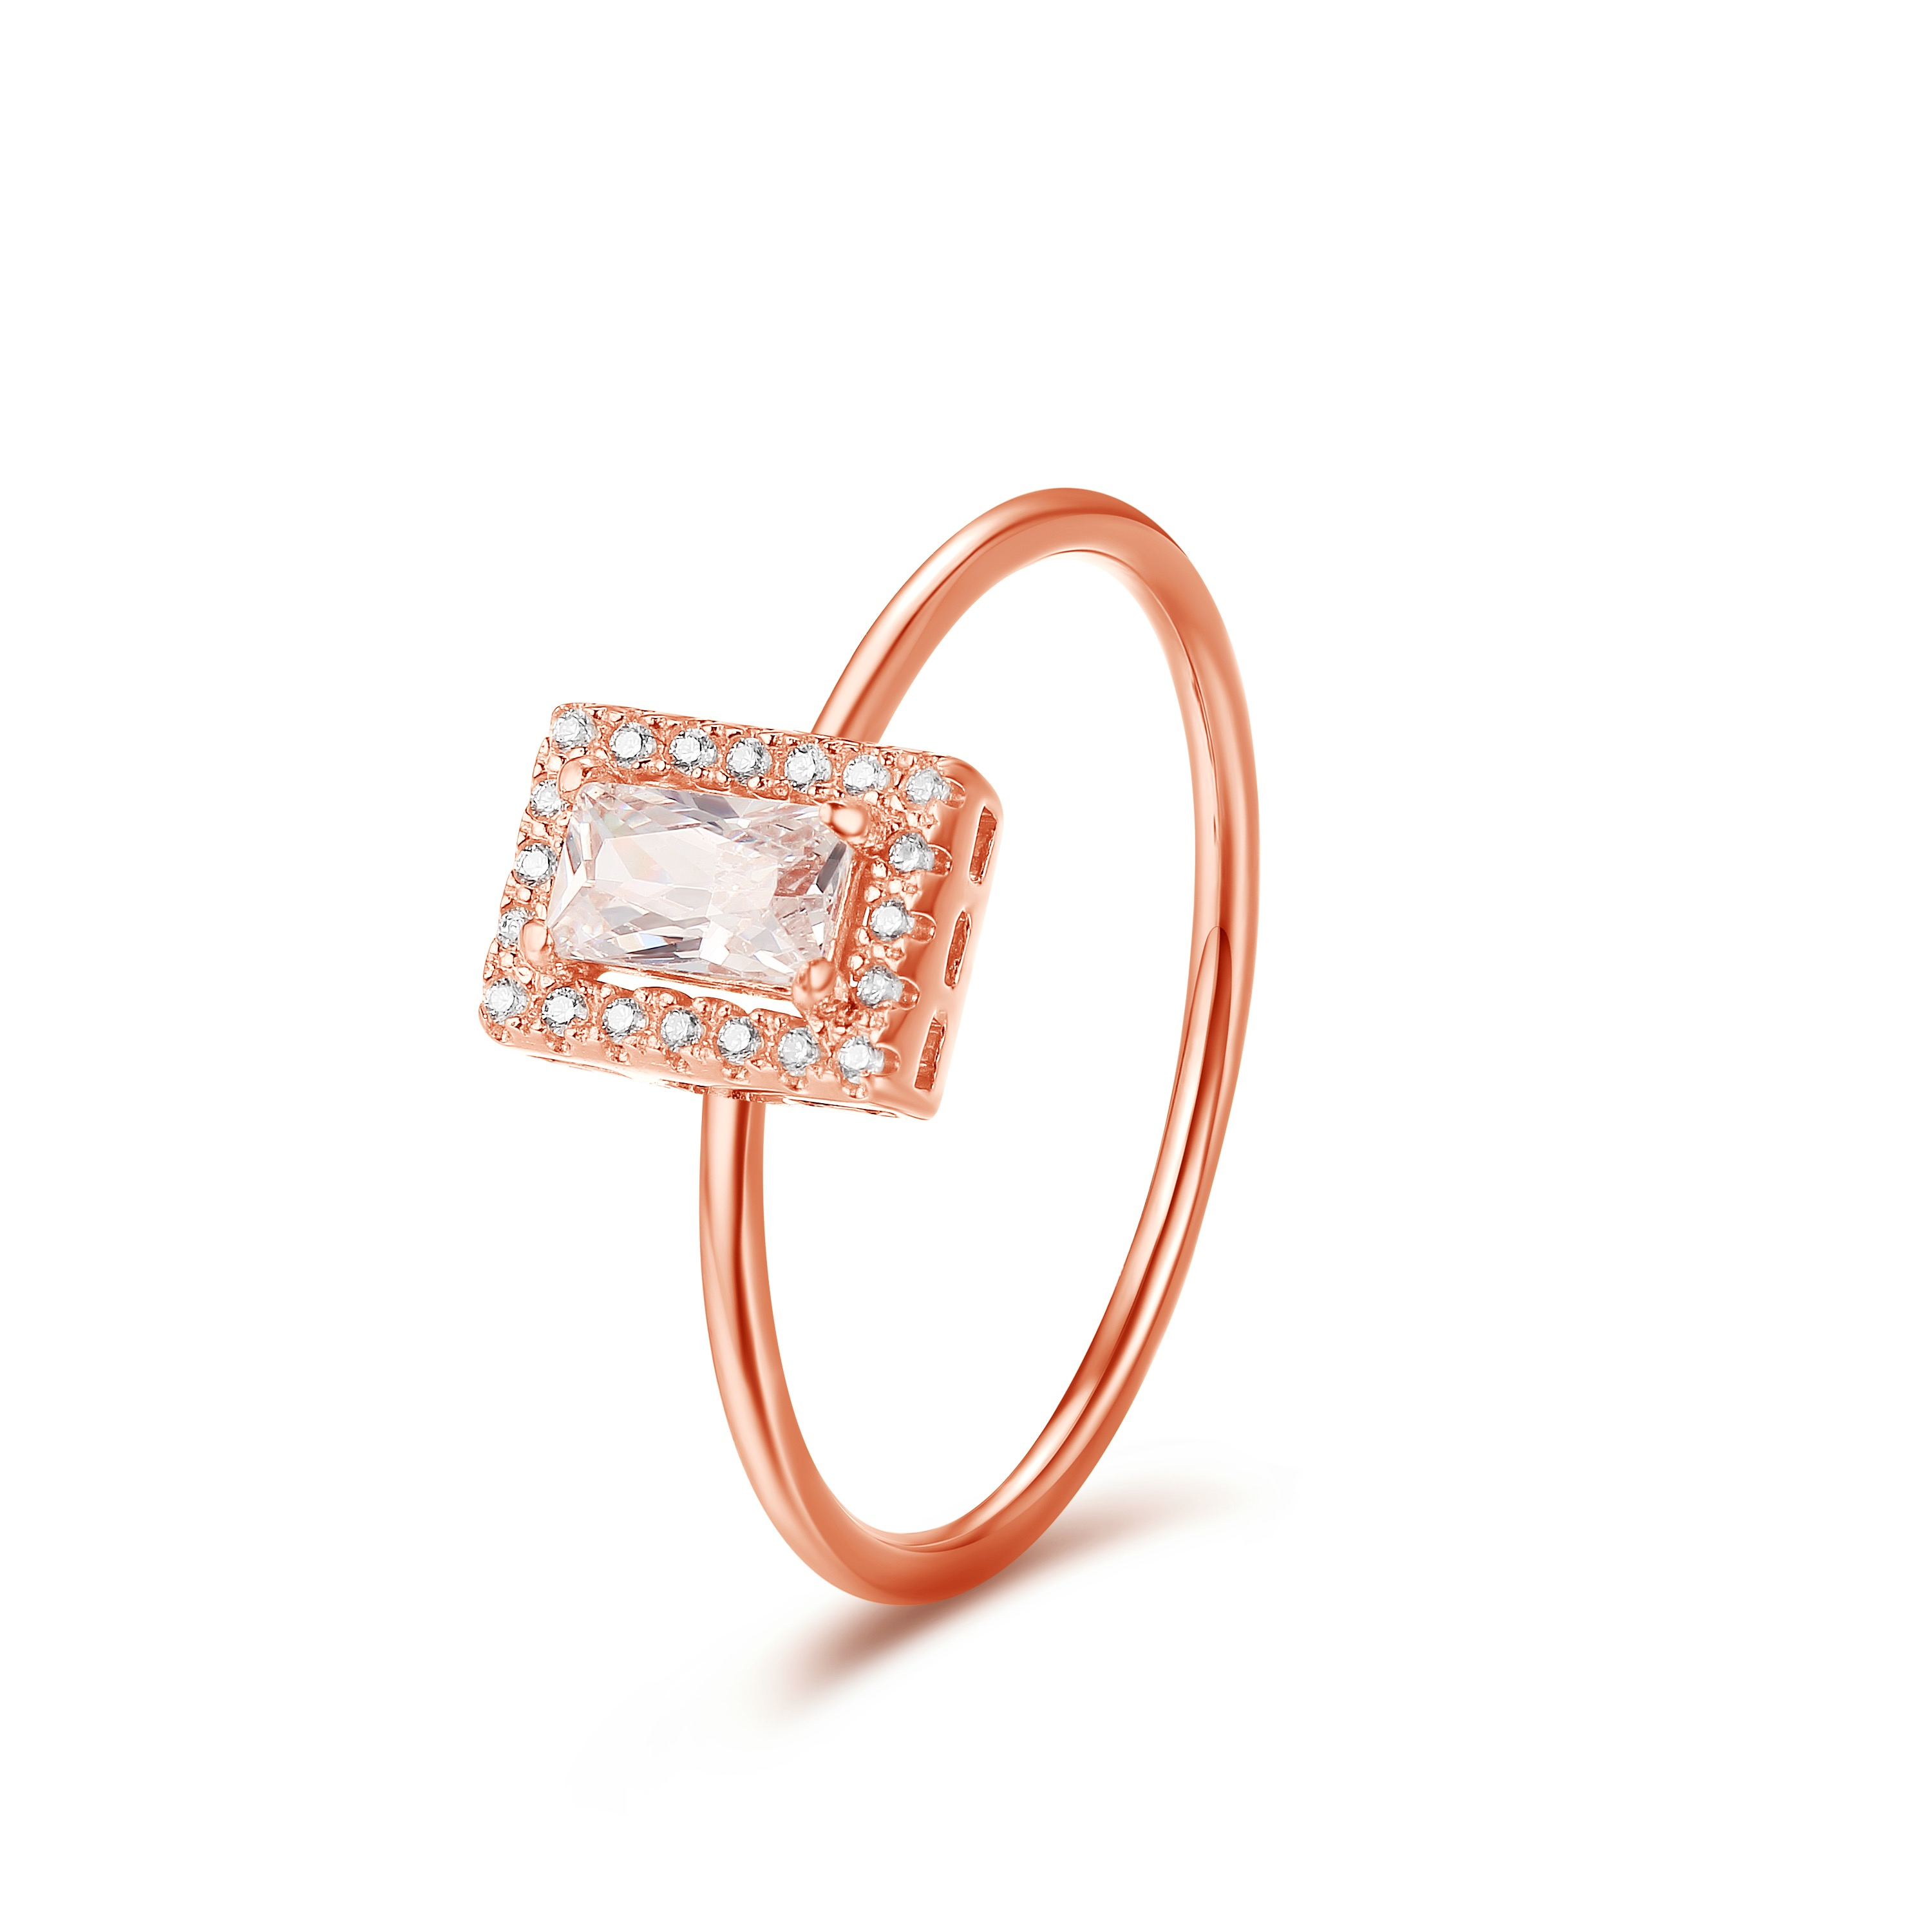 1ee2fe1b6e149 Details about Elegance Princess Cut Tower Ring in Sterling Silver Rose Gold  Plated